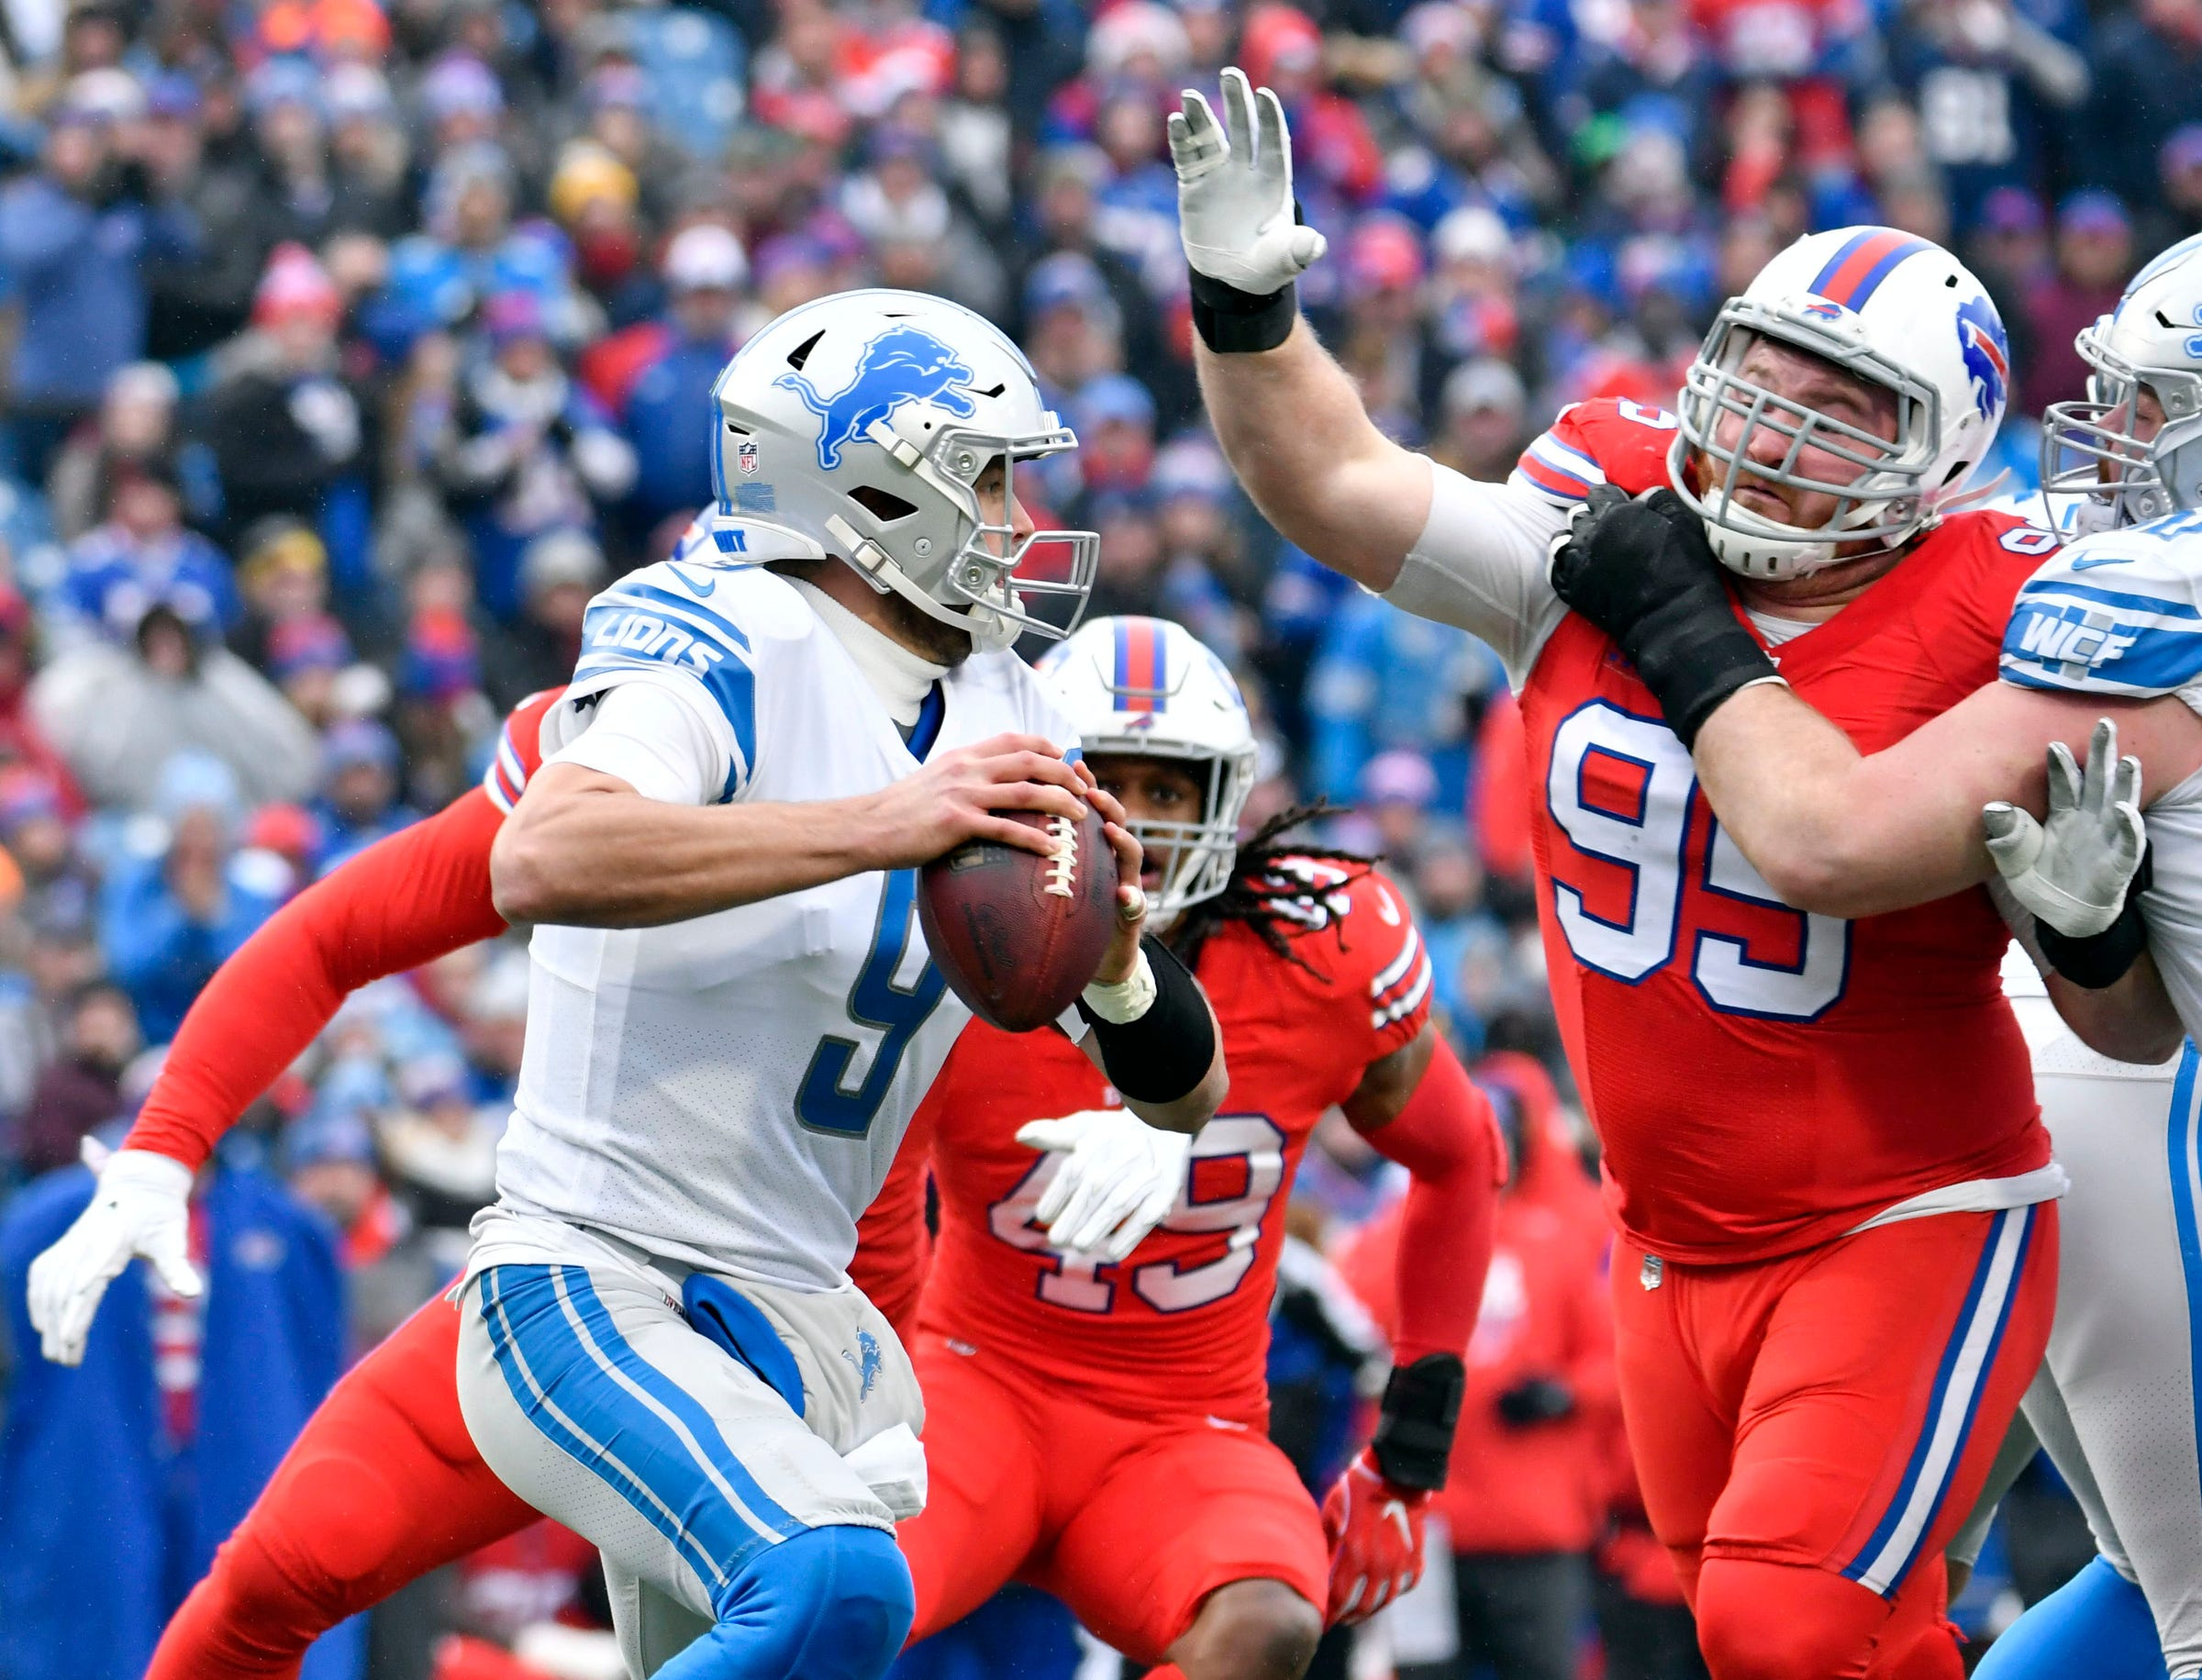 It's official. Toss this Detroit Lions season away after loss to Bills